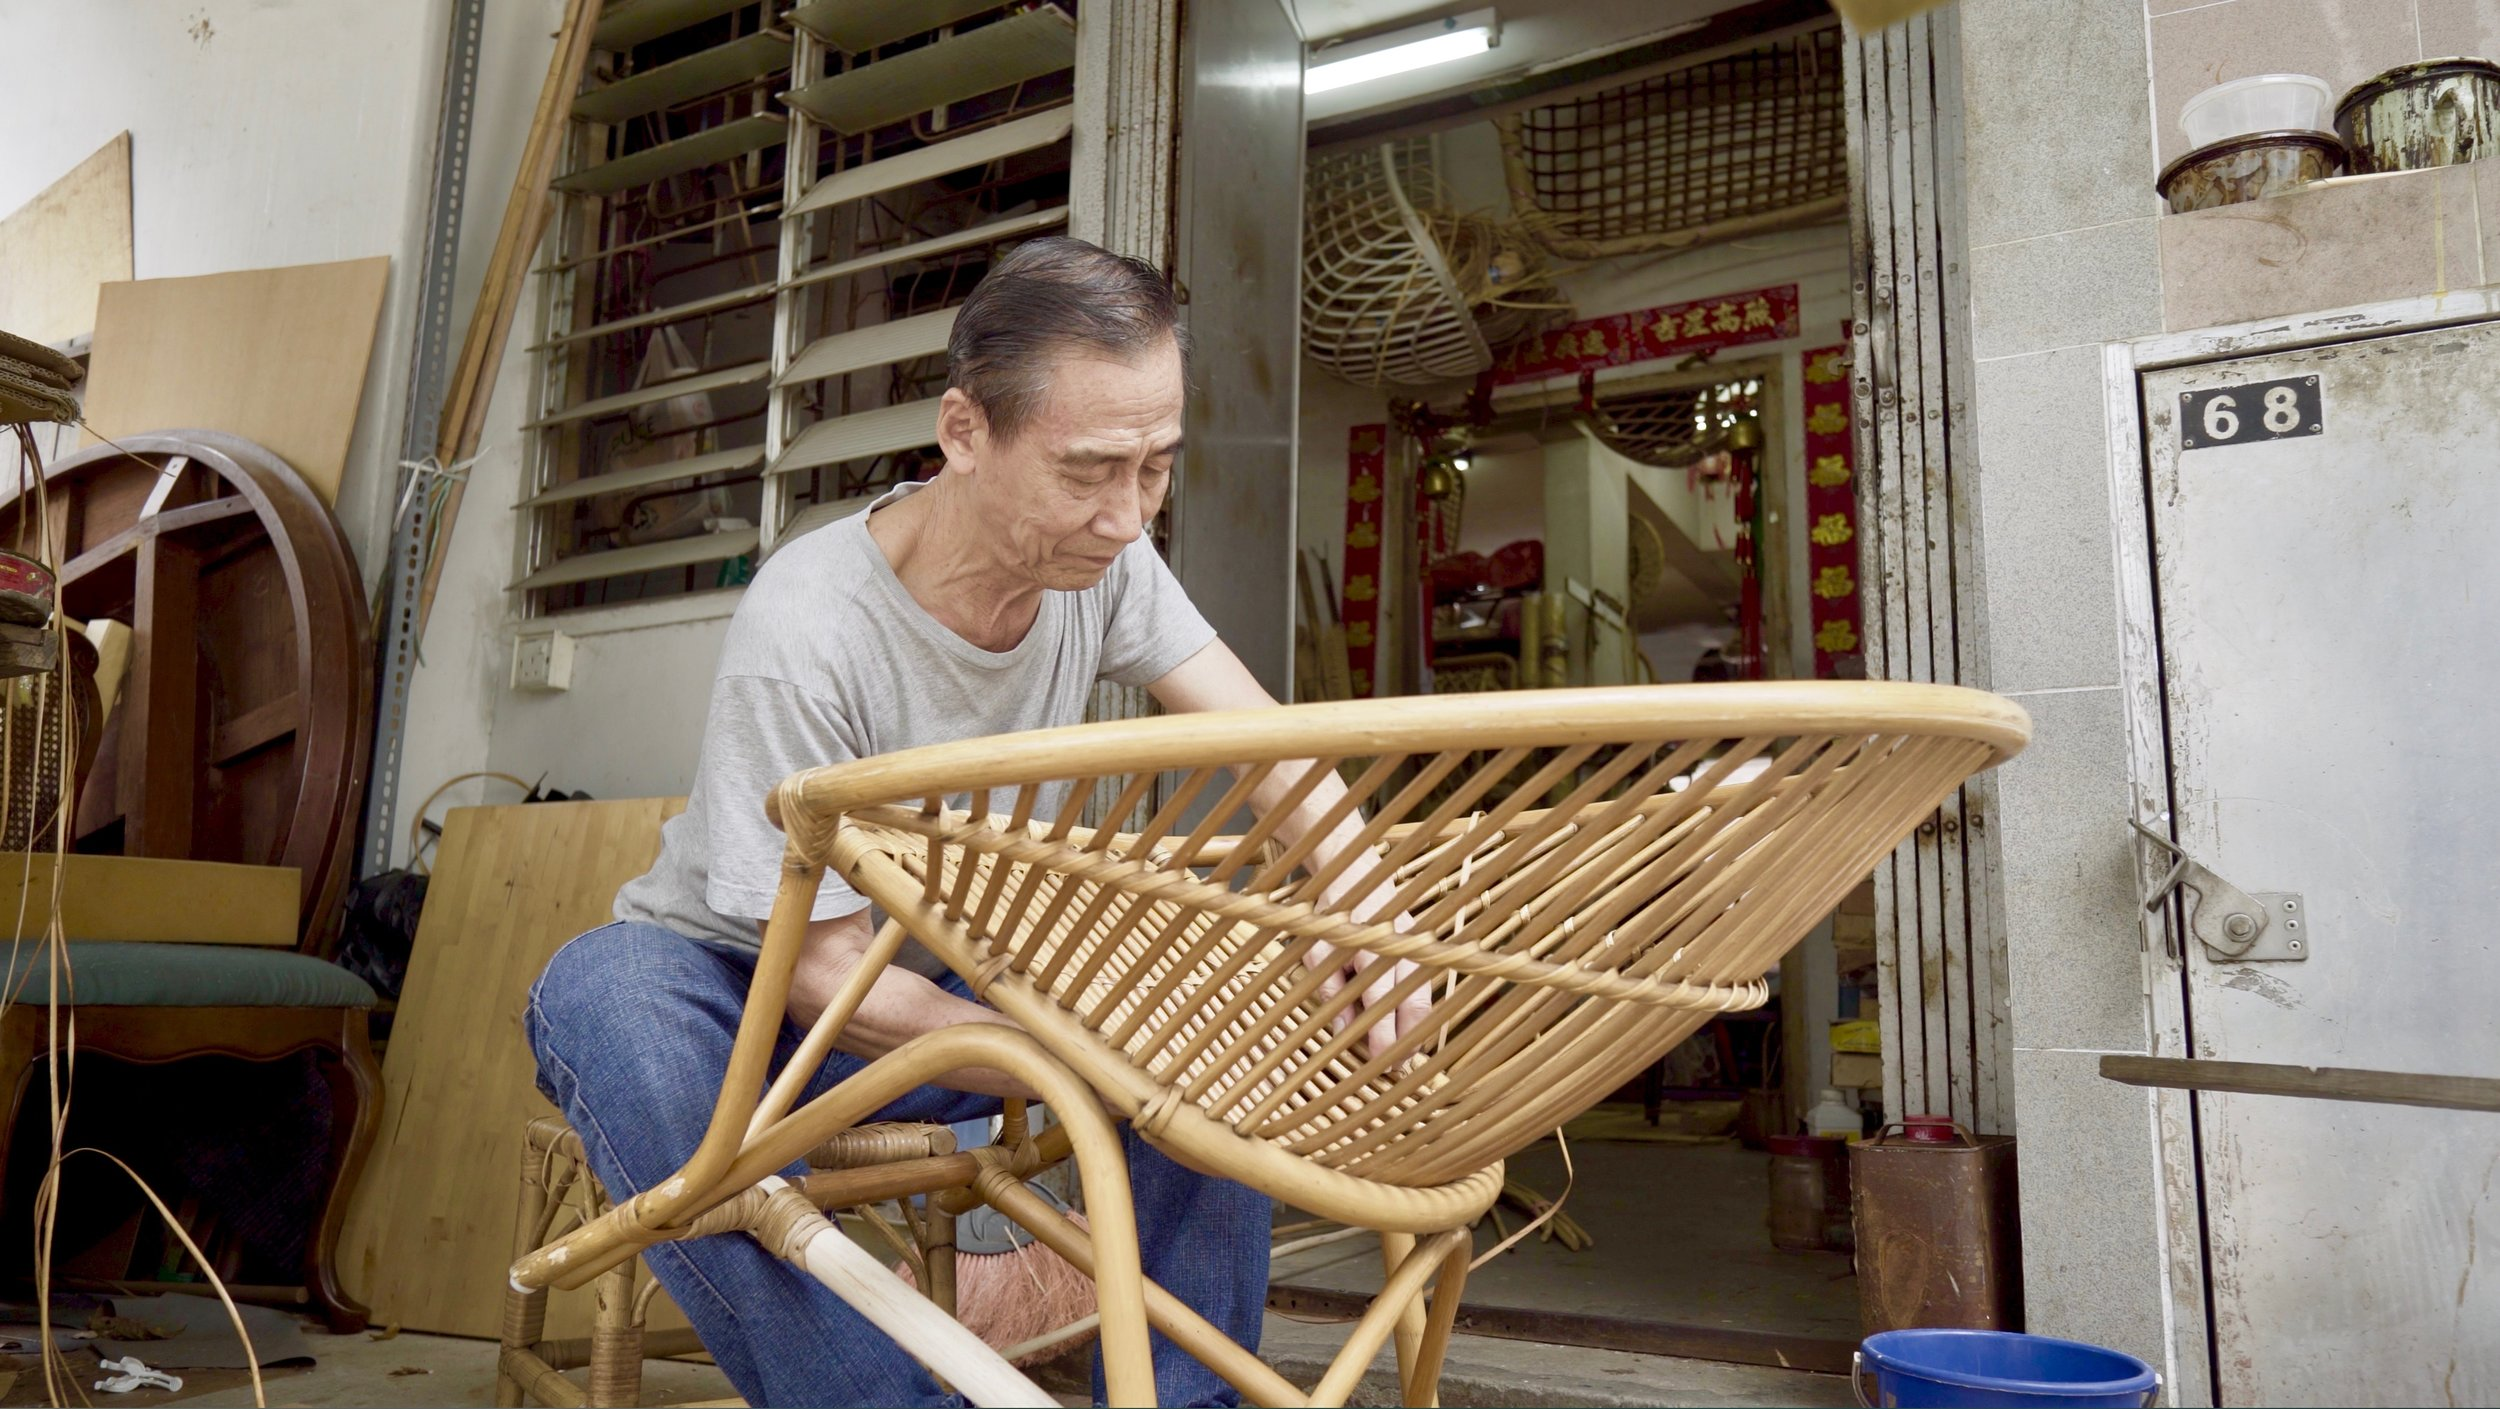 Screen grab : Intangible Cultural Heritage documentary on rattan furniture making.